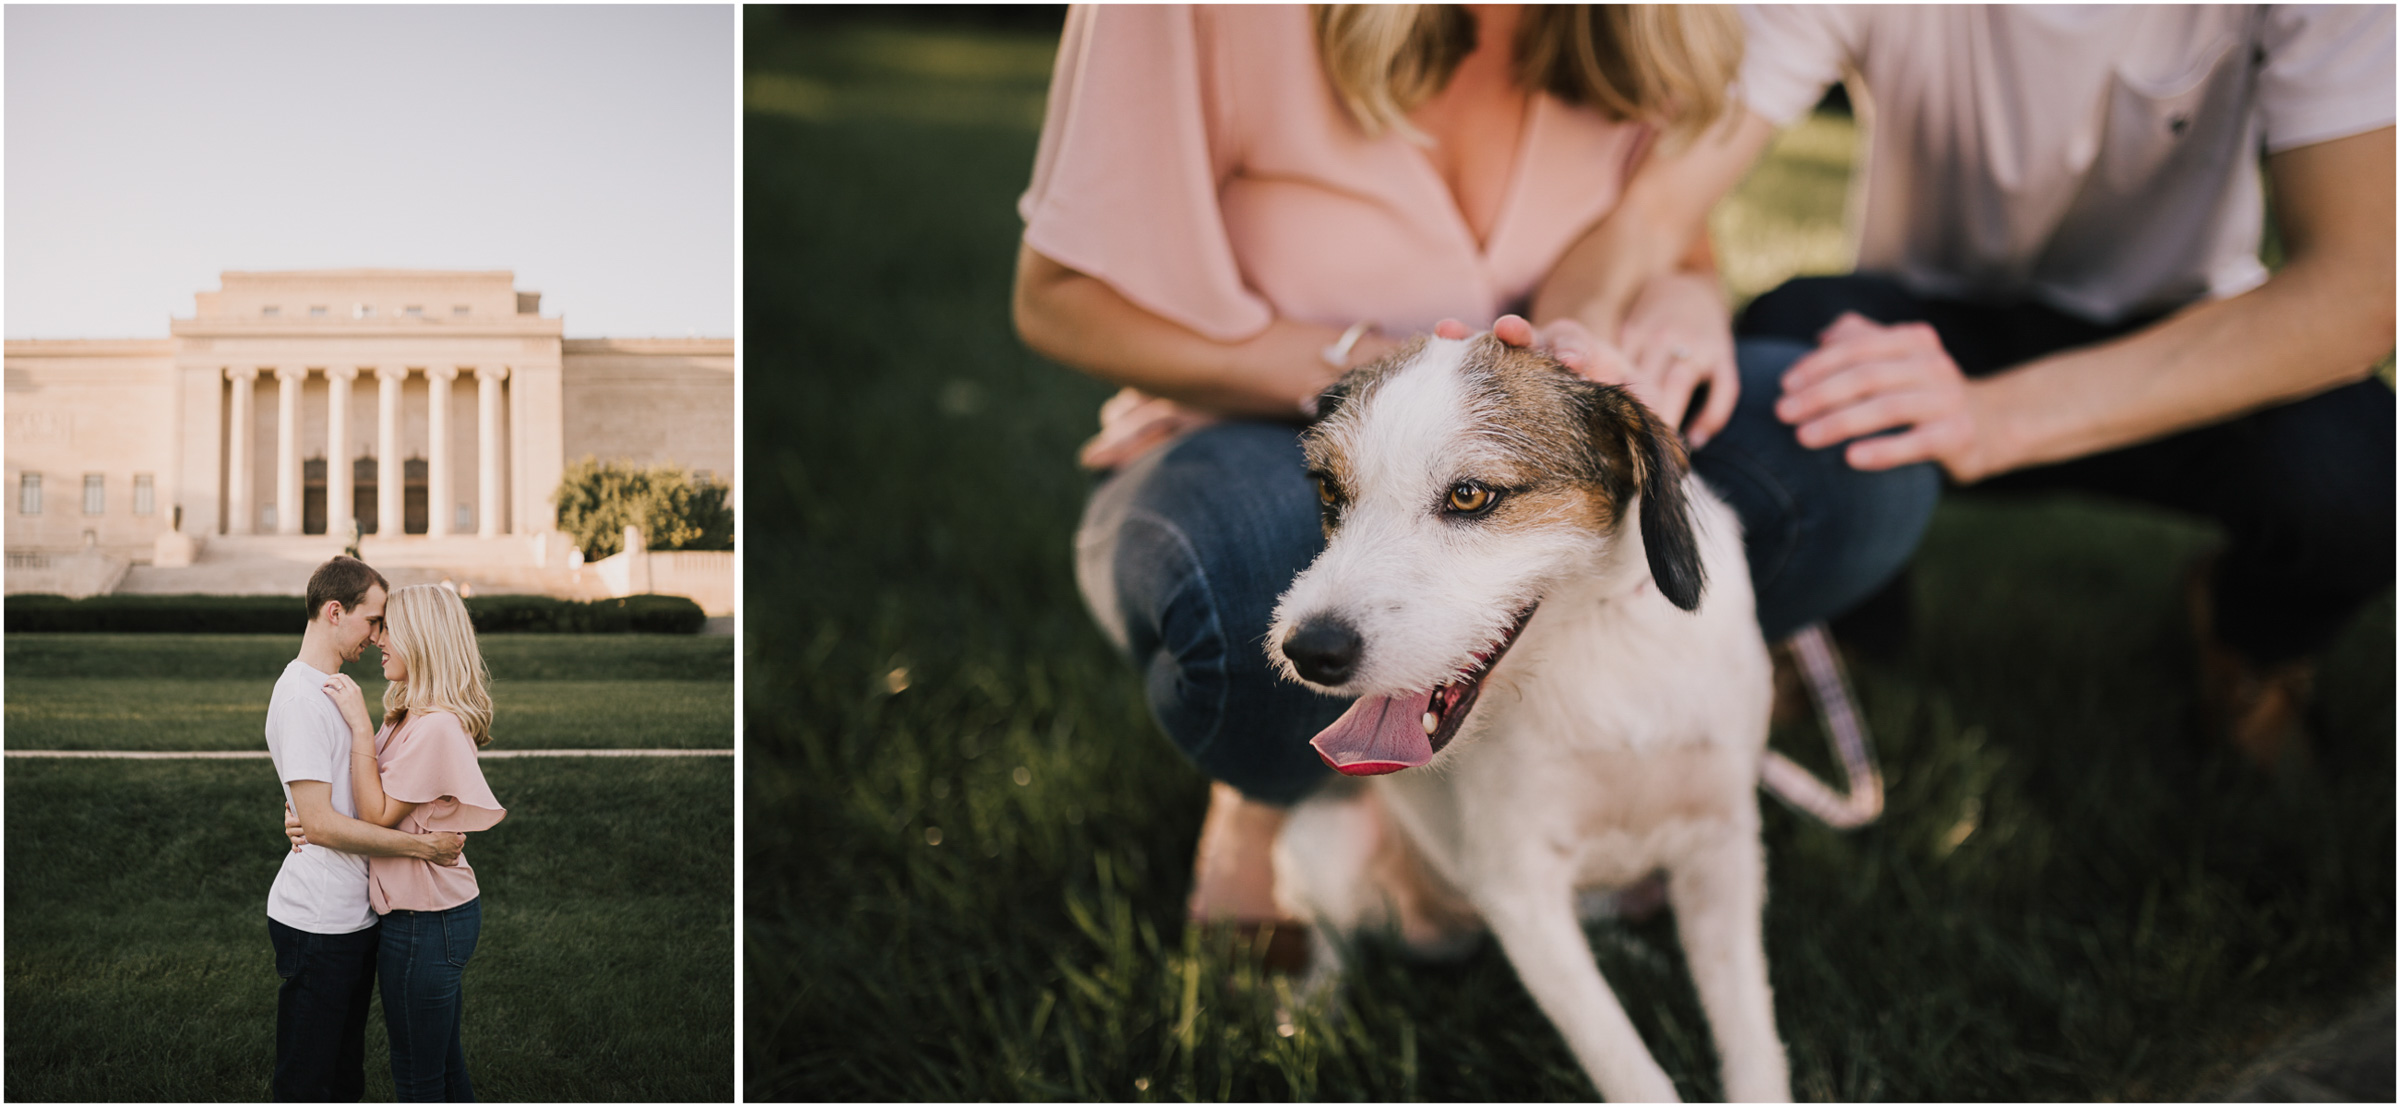 alyssa barletter photography nelson atkins art museum classic summer engagement session with dog-8.jpg